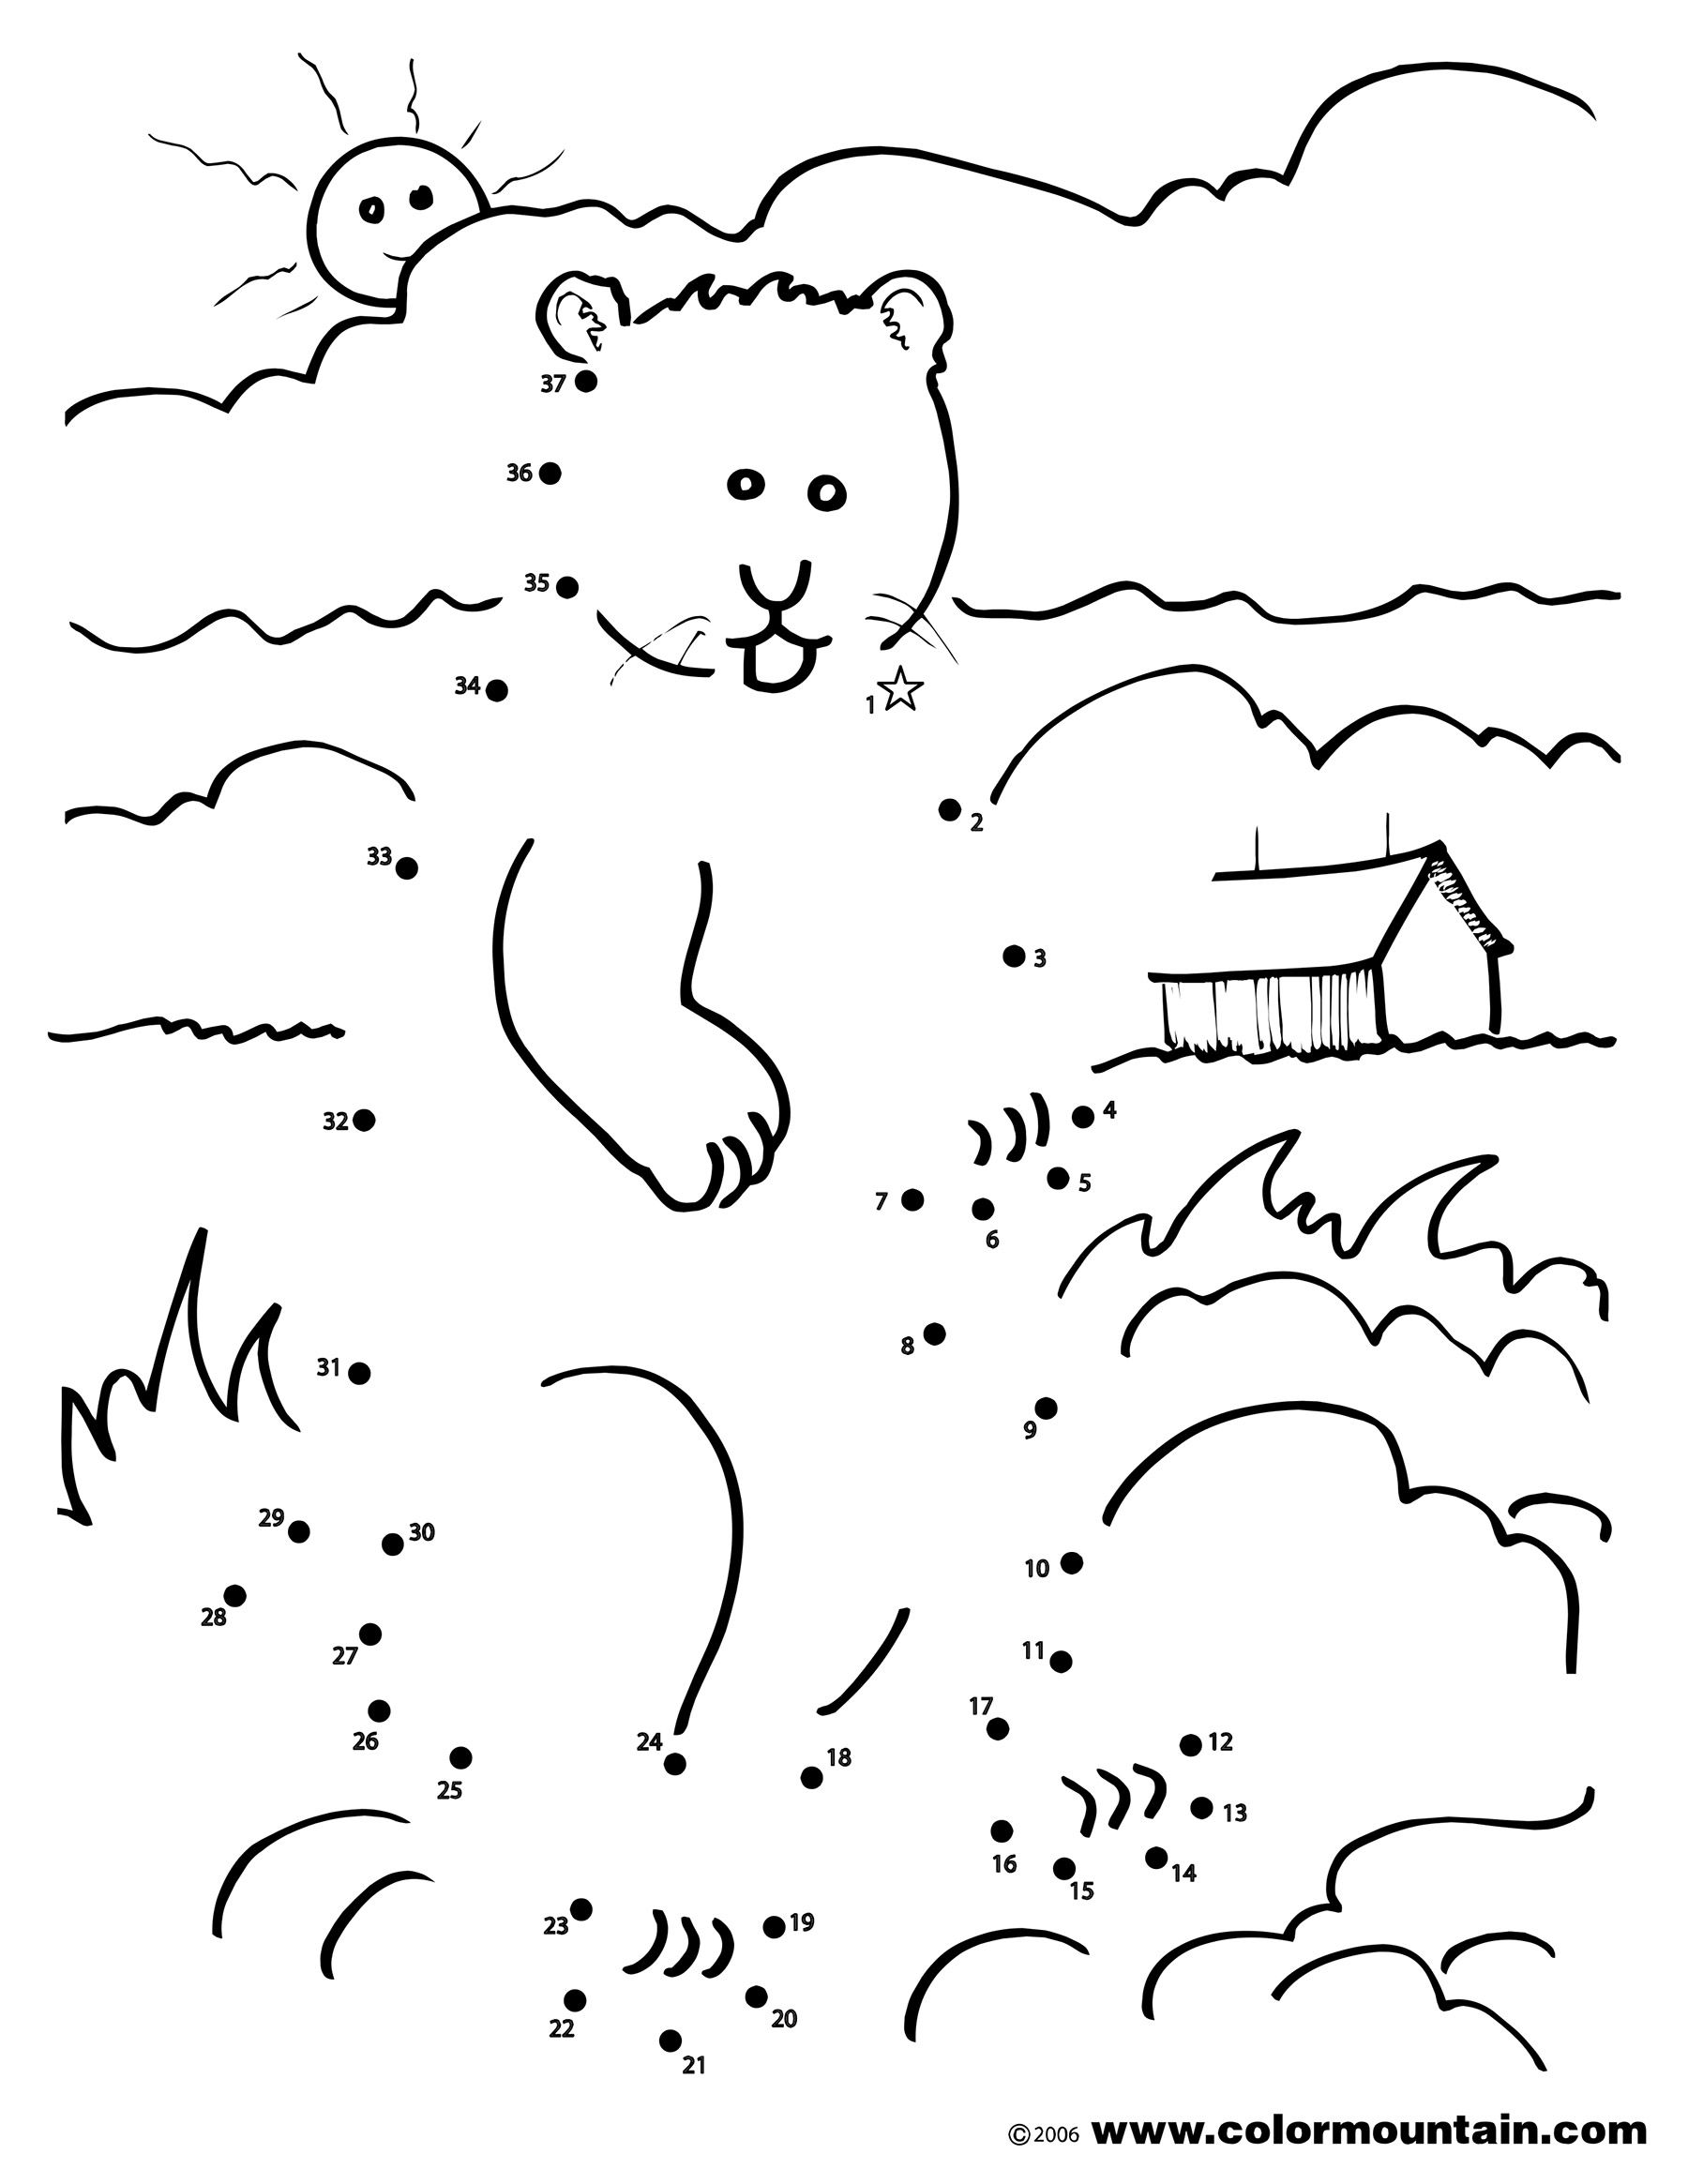 groundhog day coloring pages preschool - photo#26